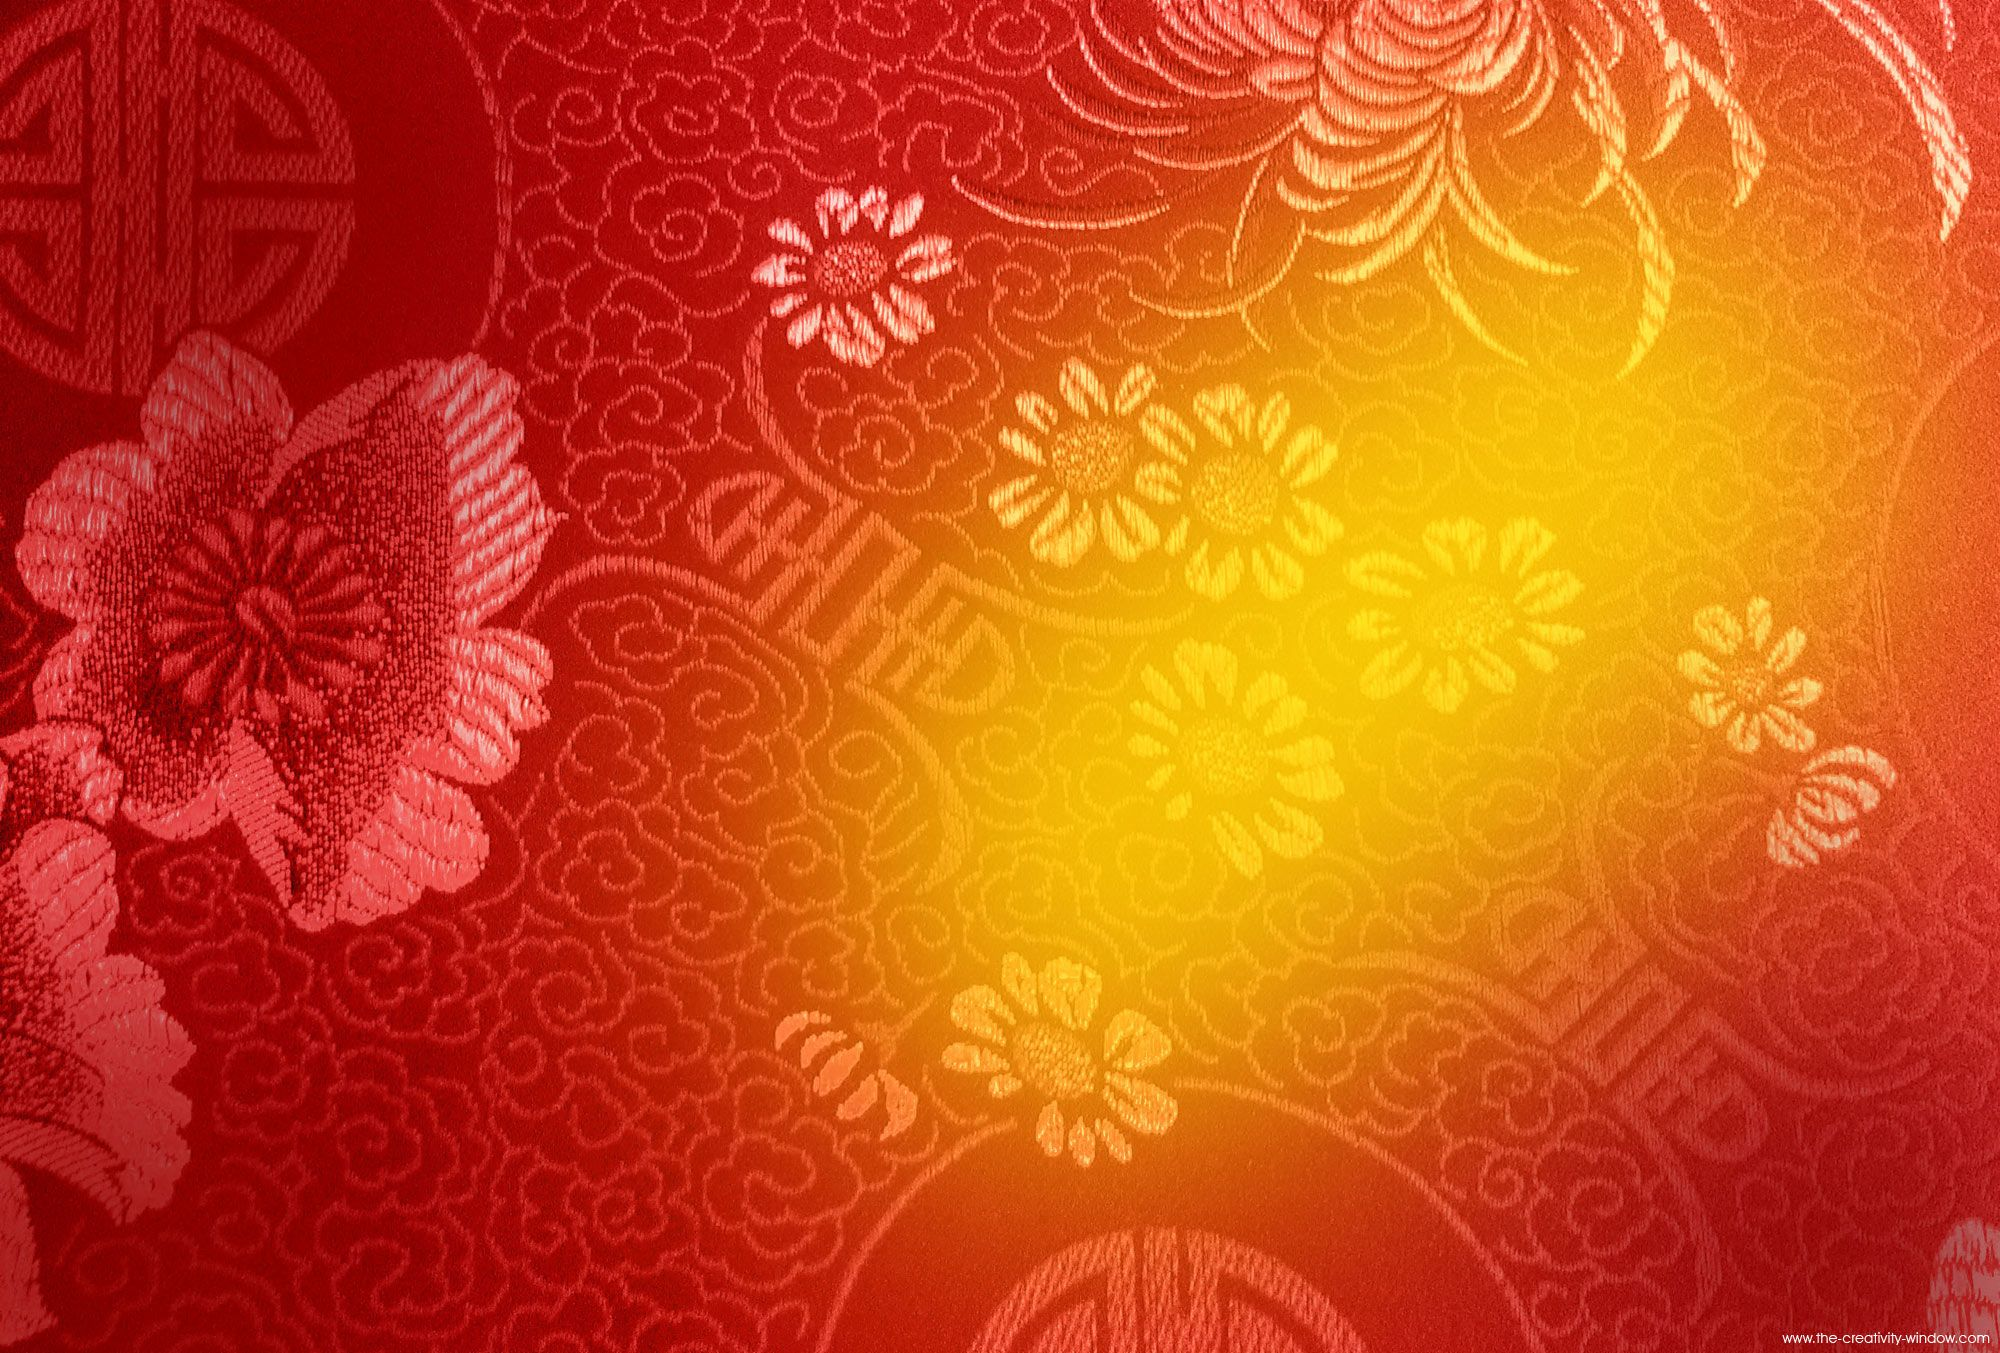 Chinese New Year Background Images download   Chinese New Year     Chinese New Year Background Images download